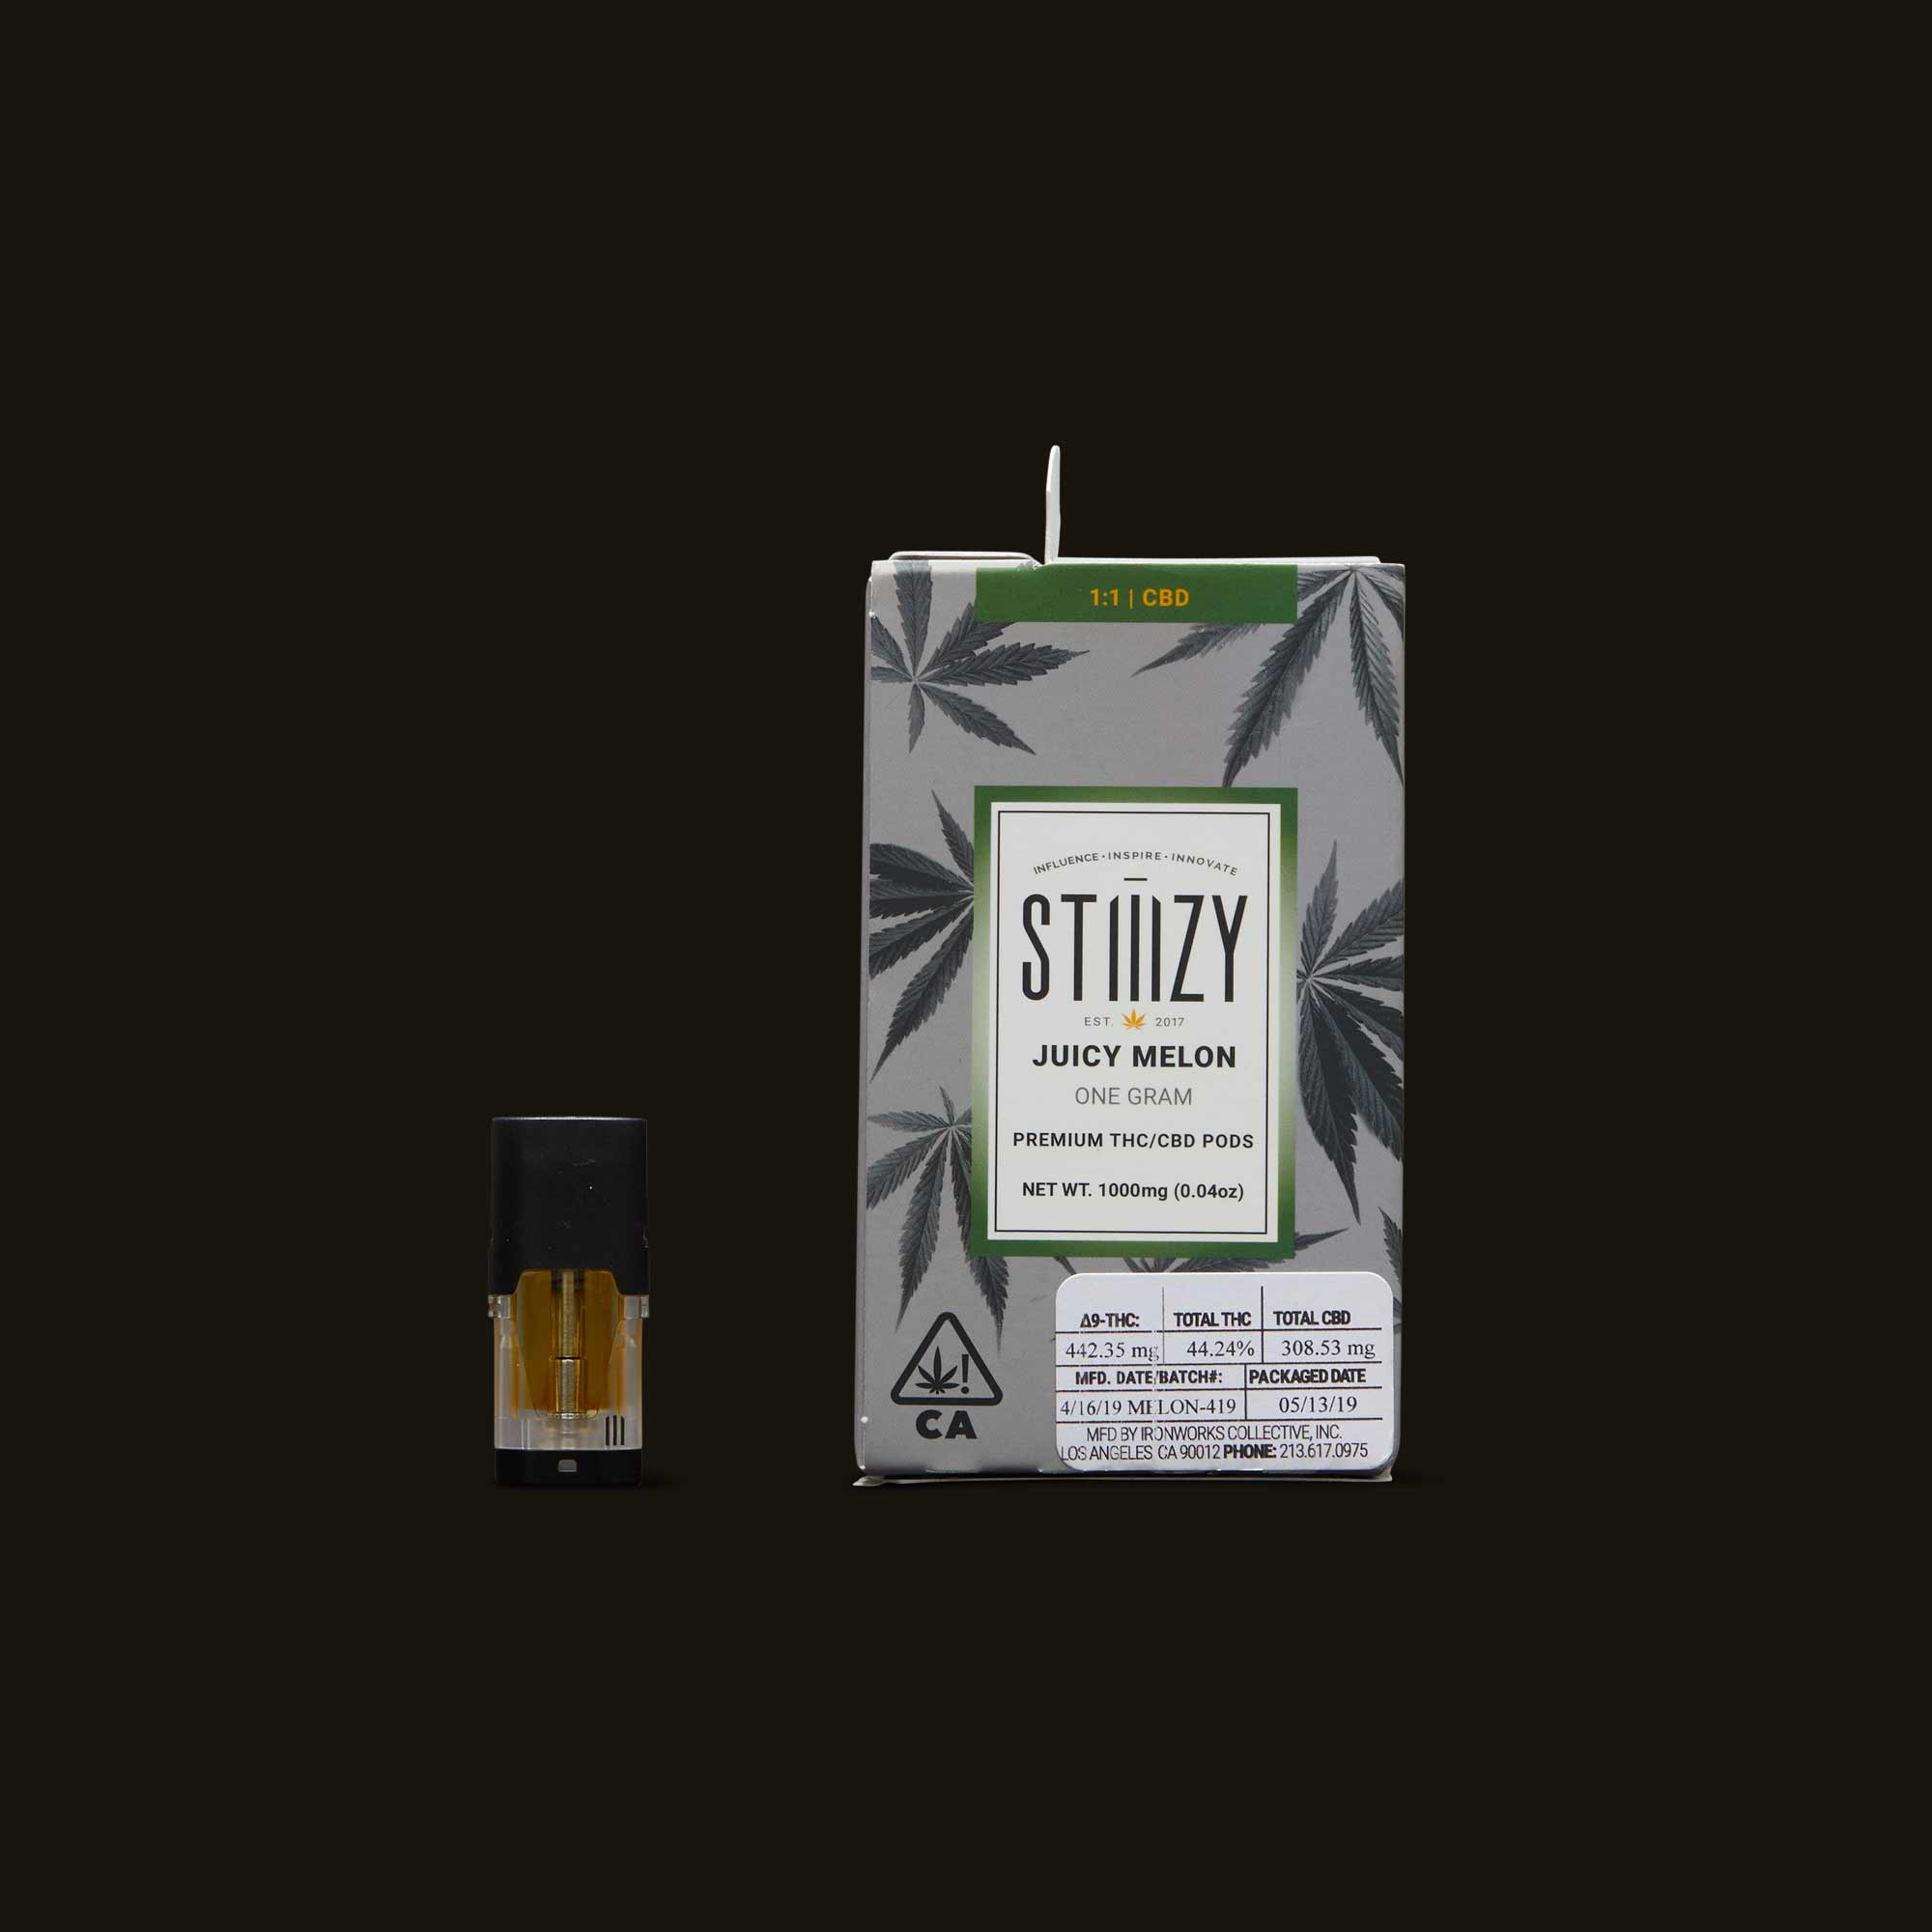 Stiiizy Juicy Melon 1:1 THC/CBD POD